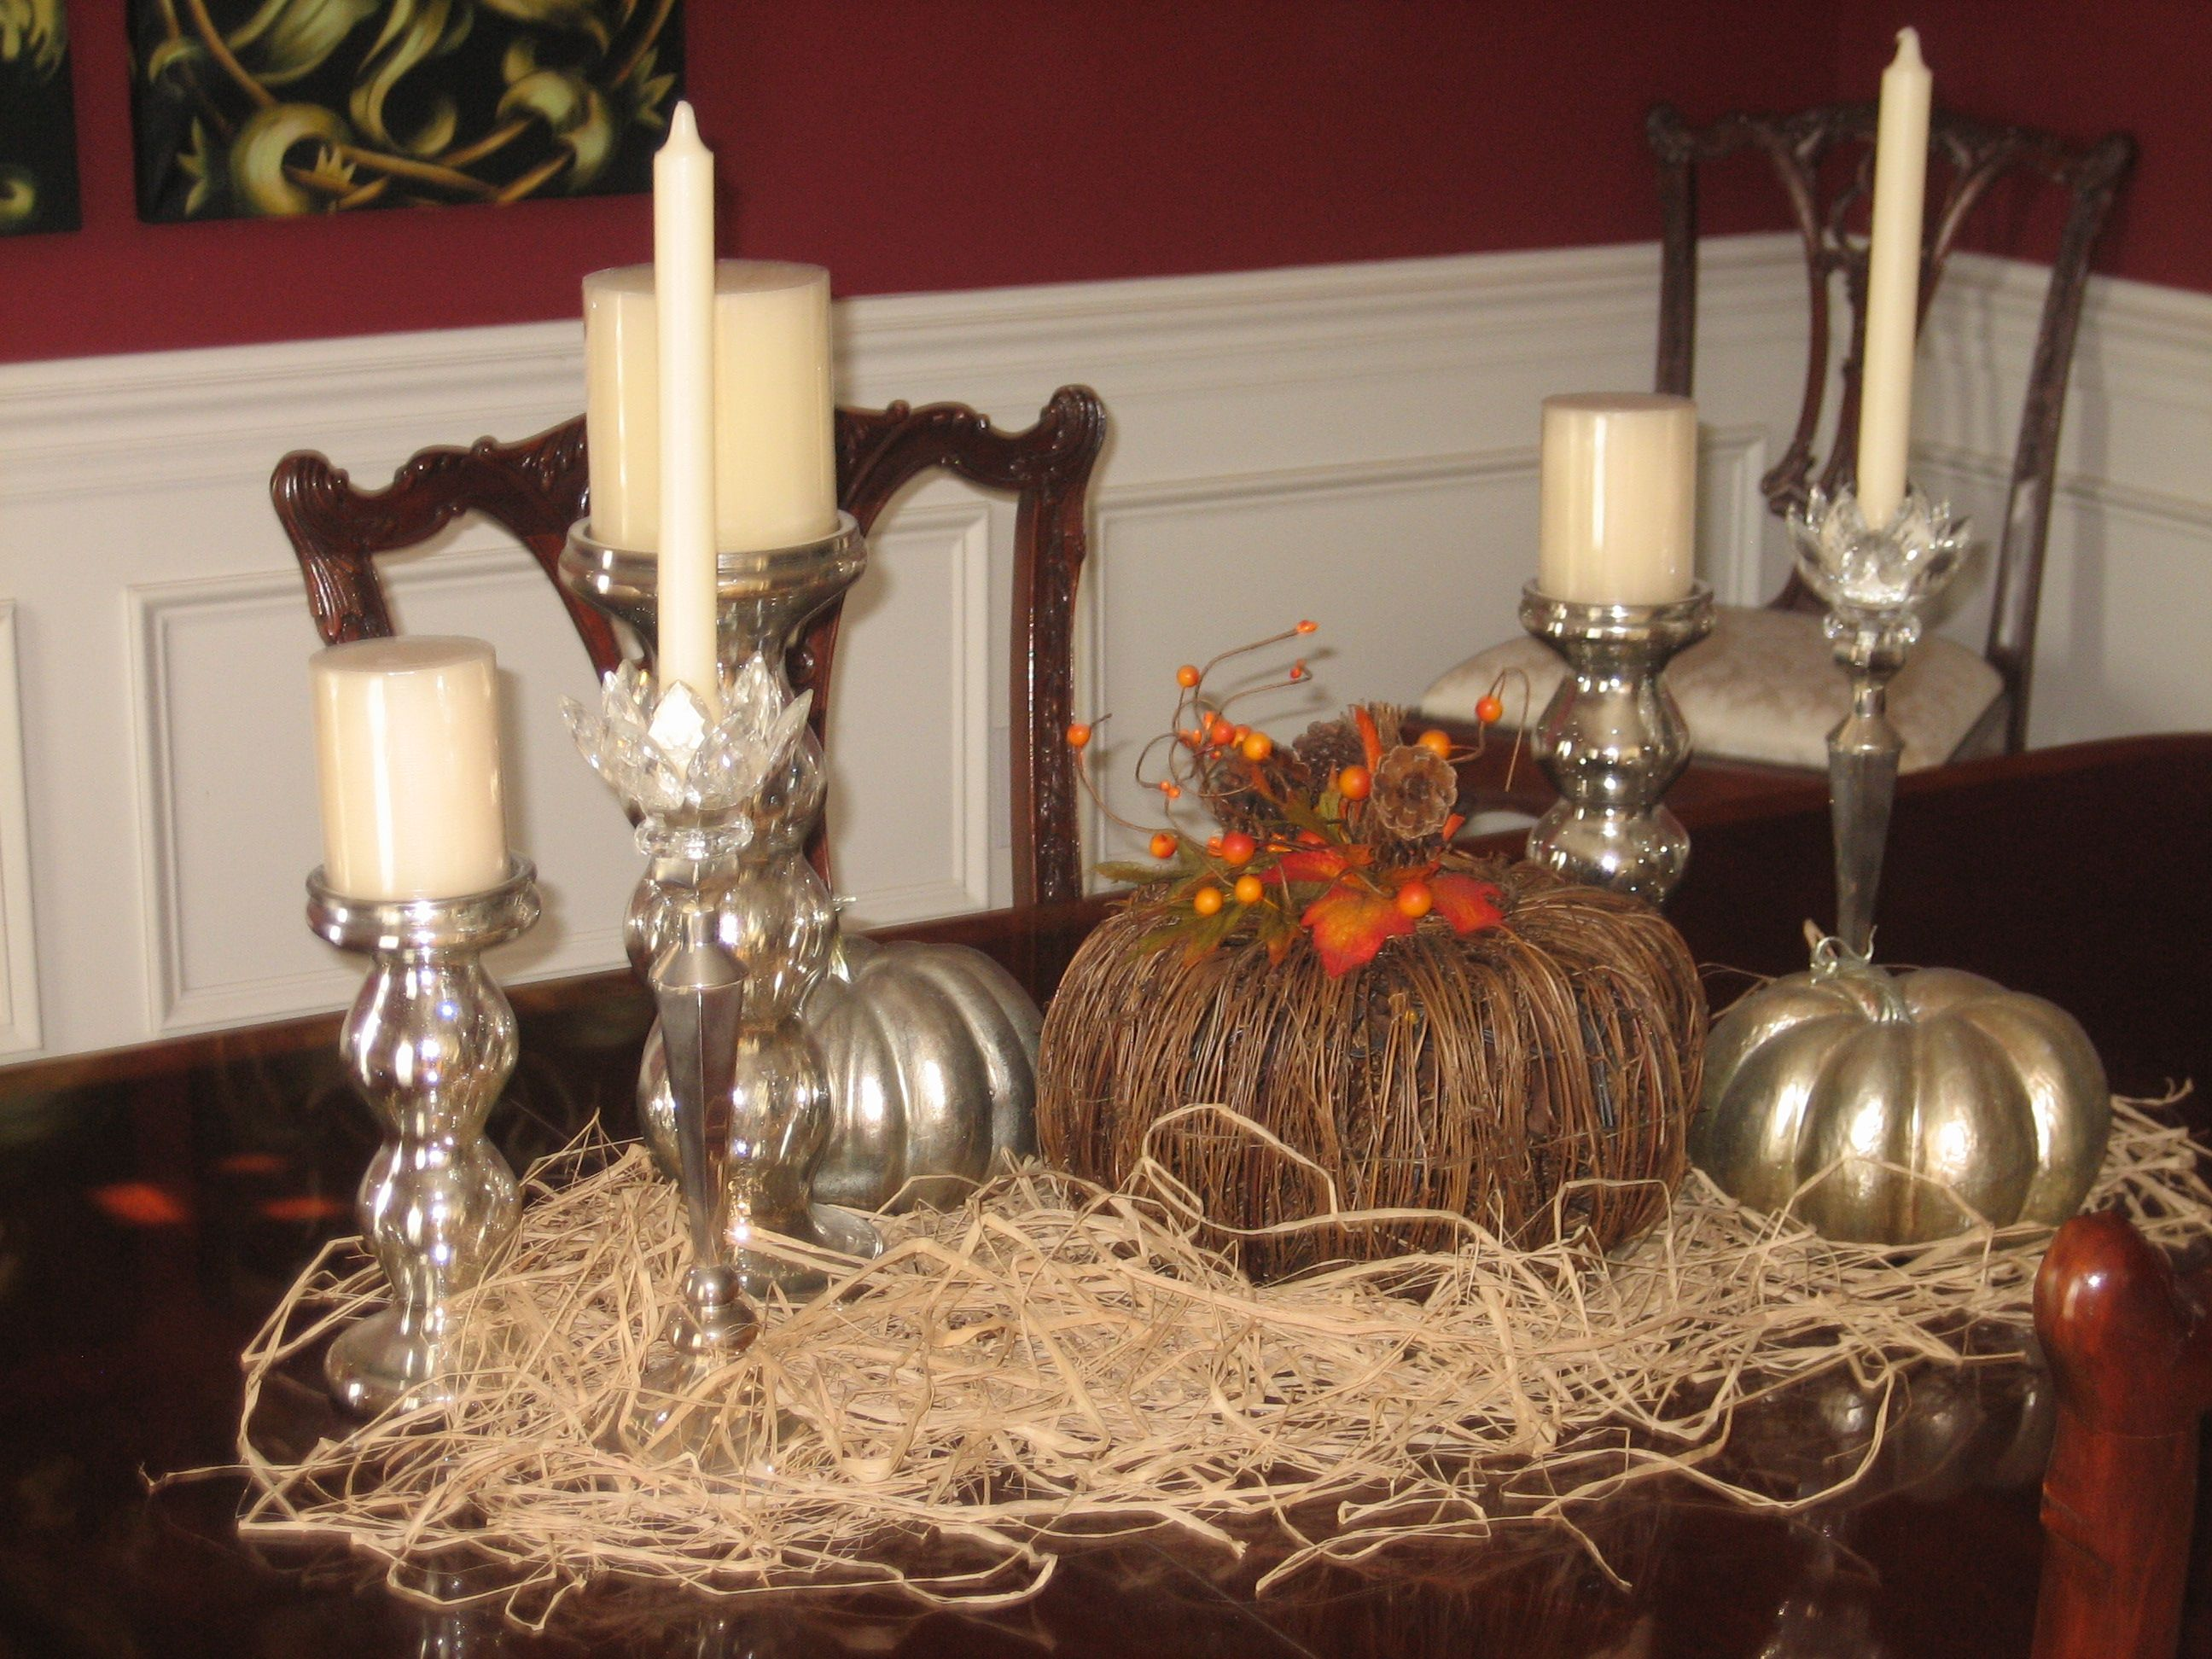 Mary's Thanksgiving Table. My favorite!